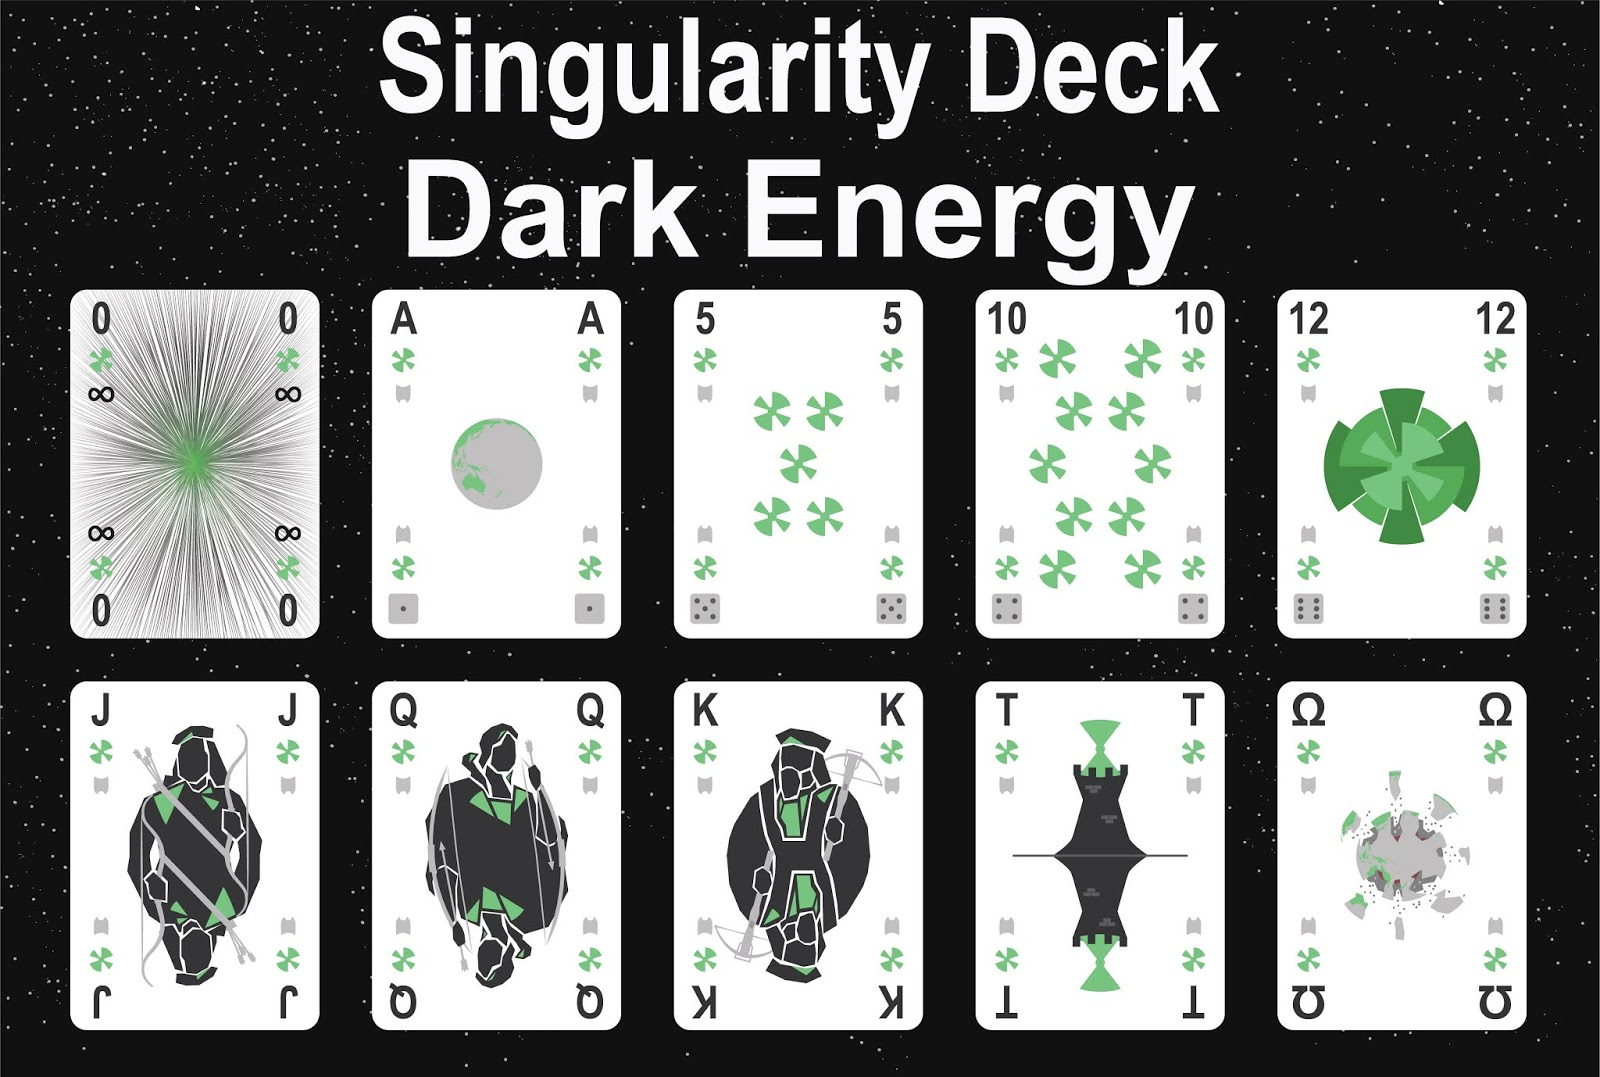 The Singularity Deck - Dark Energy Art